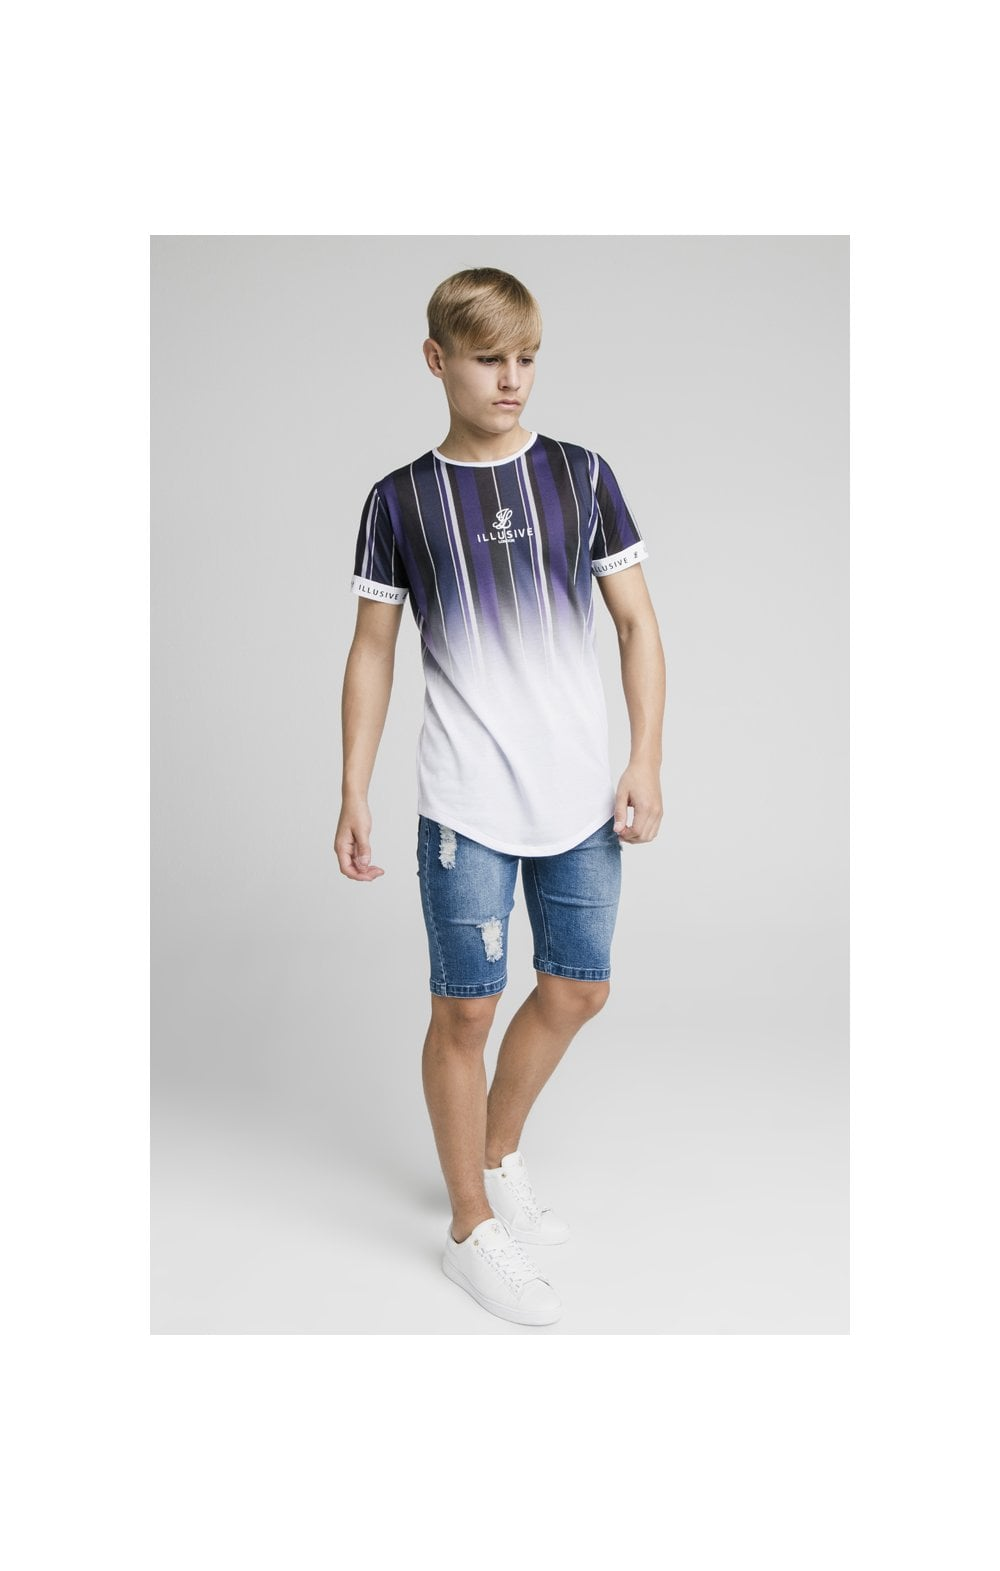 Illusive London Fade Stripe Tech Tee - Navy, Purple, Grey & White (2)